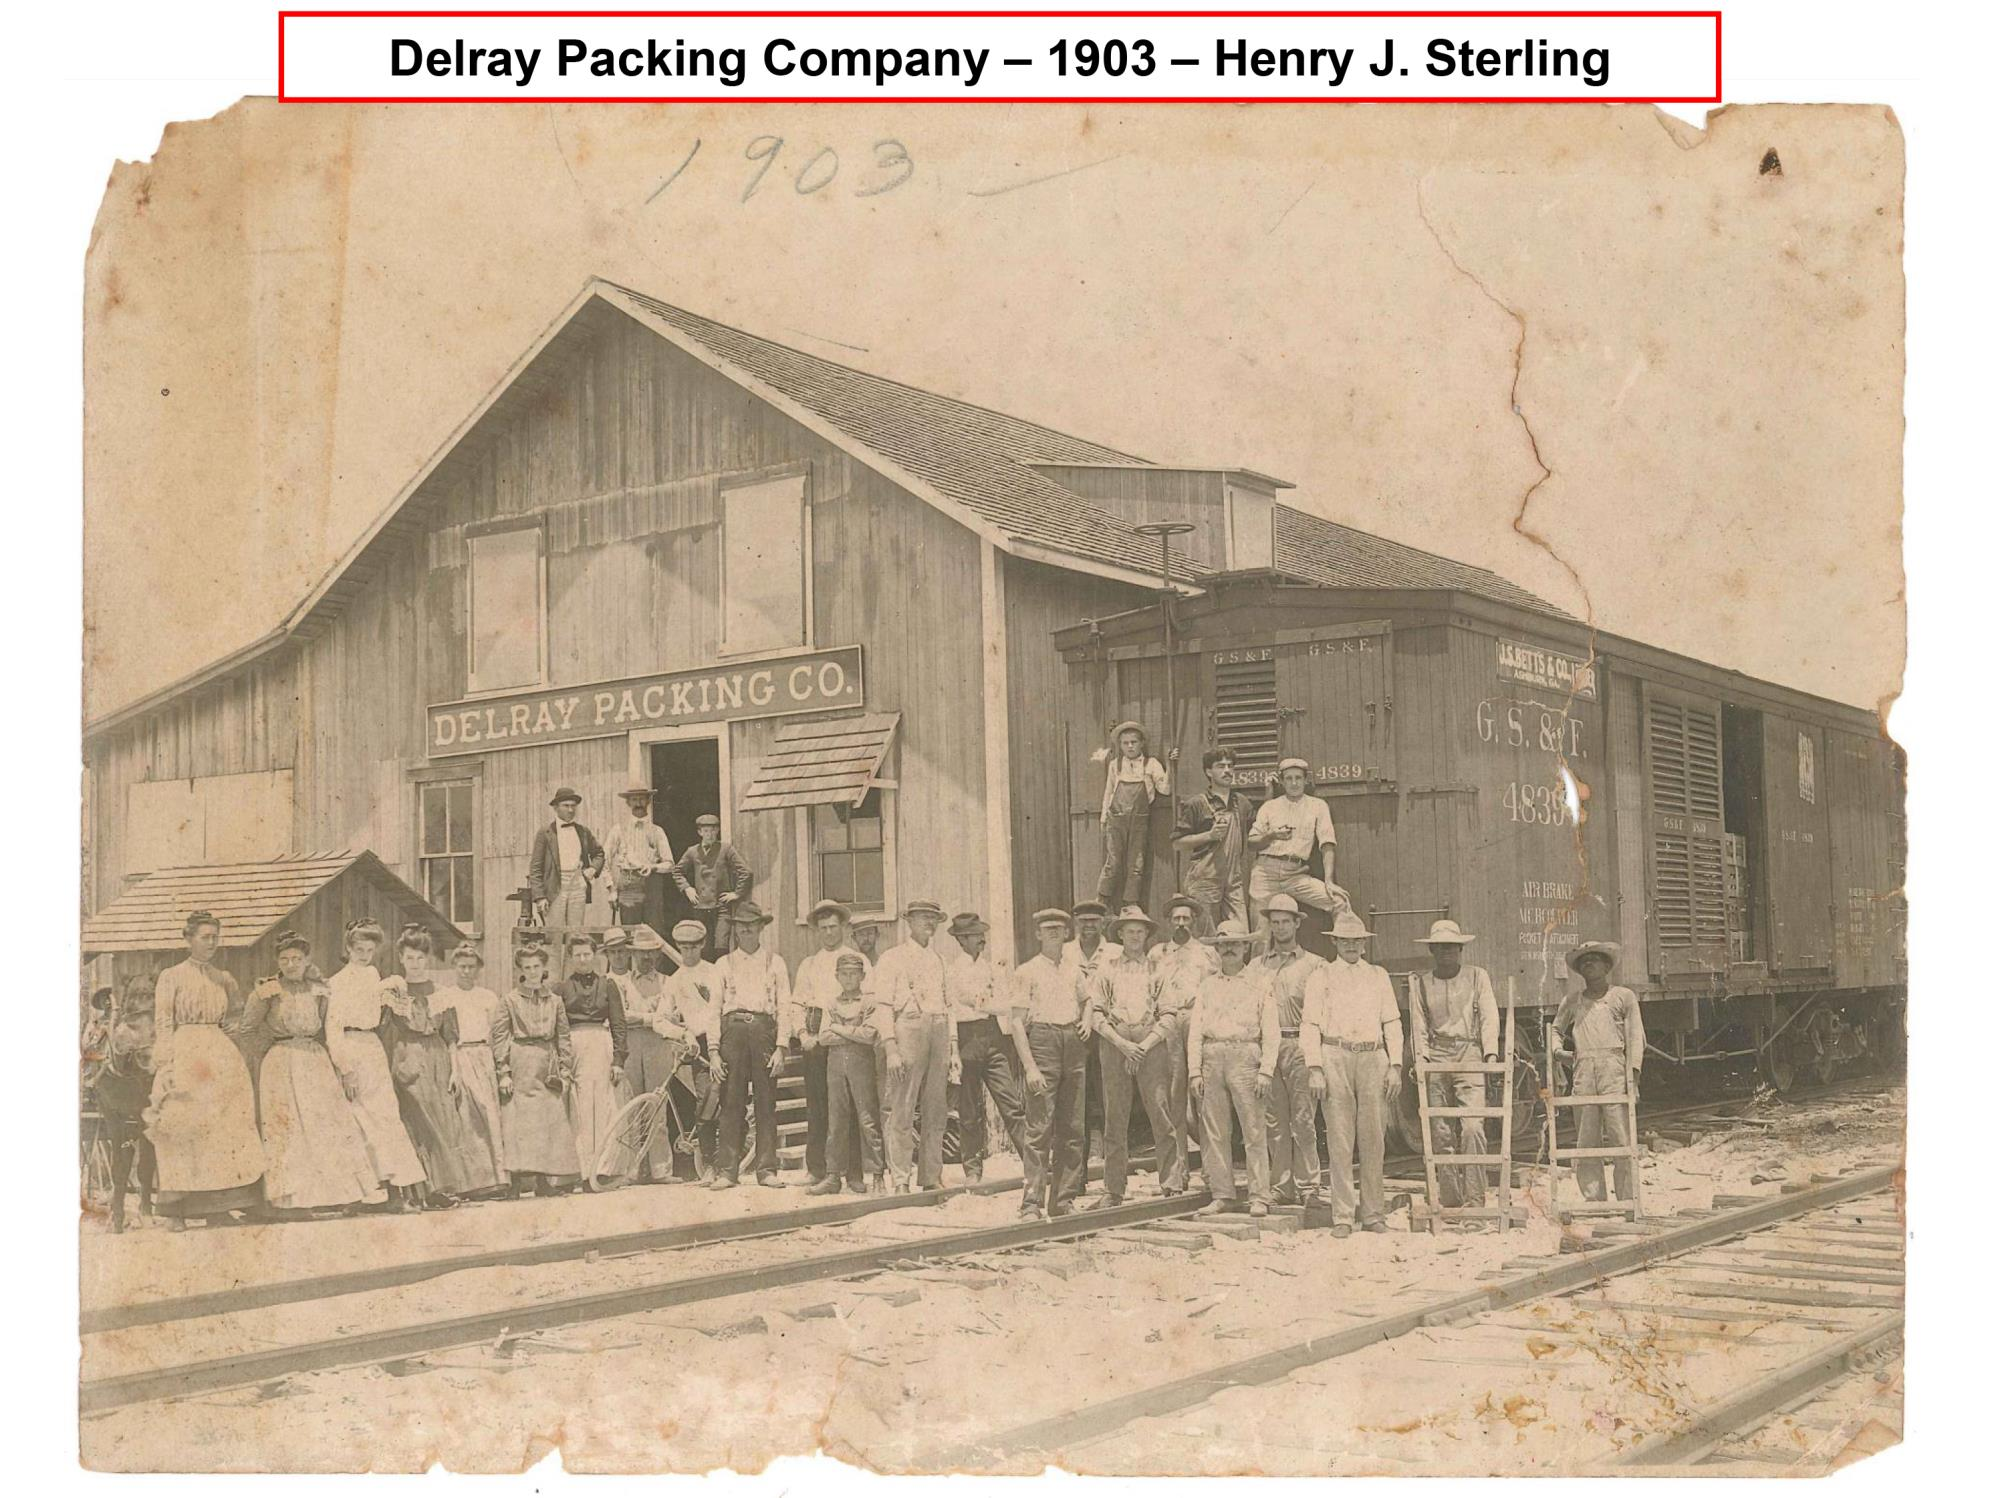 DBHS Delray Packing Company 1903